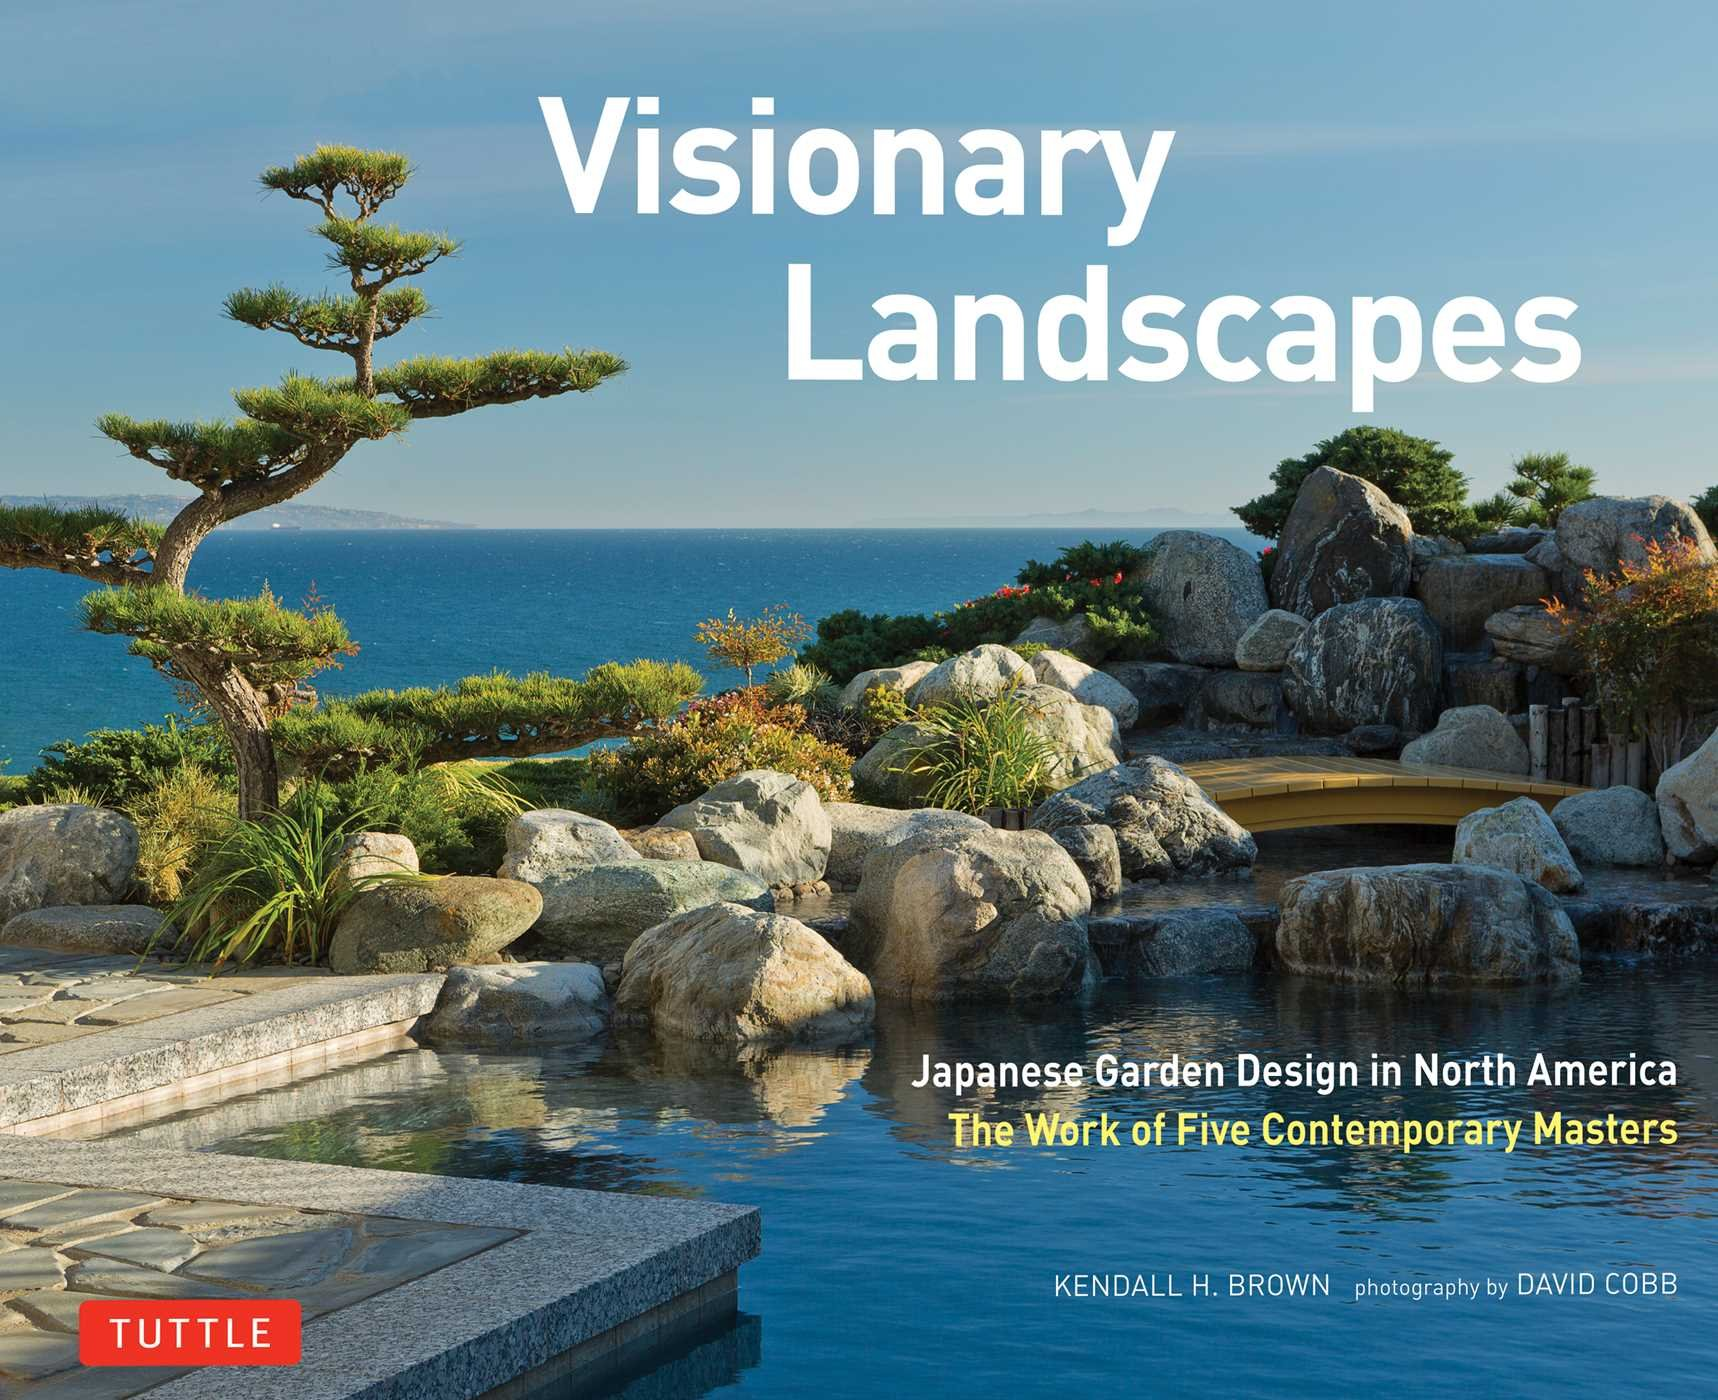 Amazon.com: Visionary Landscapes: Japanese Garden Design In North America,  The Work Of Five Contemporary Masters (9784805313862): Kendall H. Brown, ...